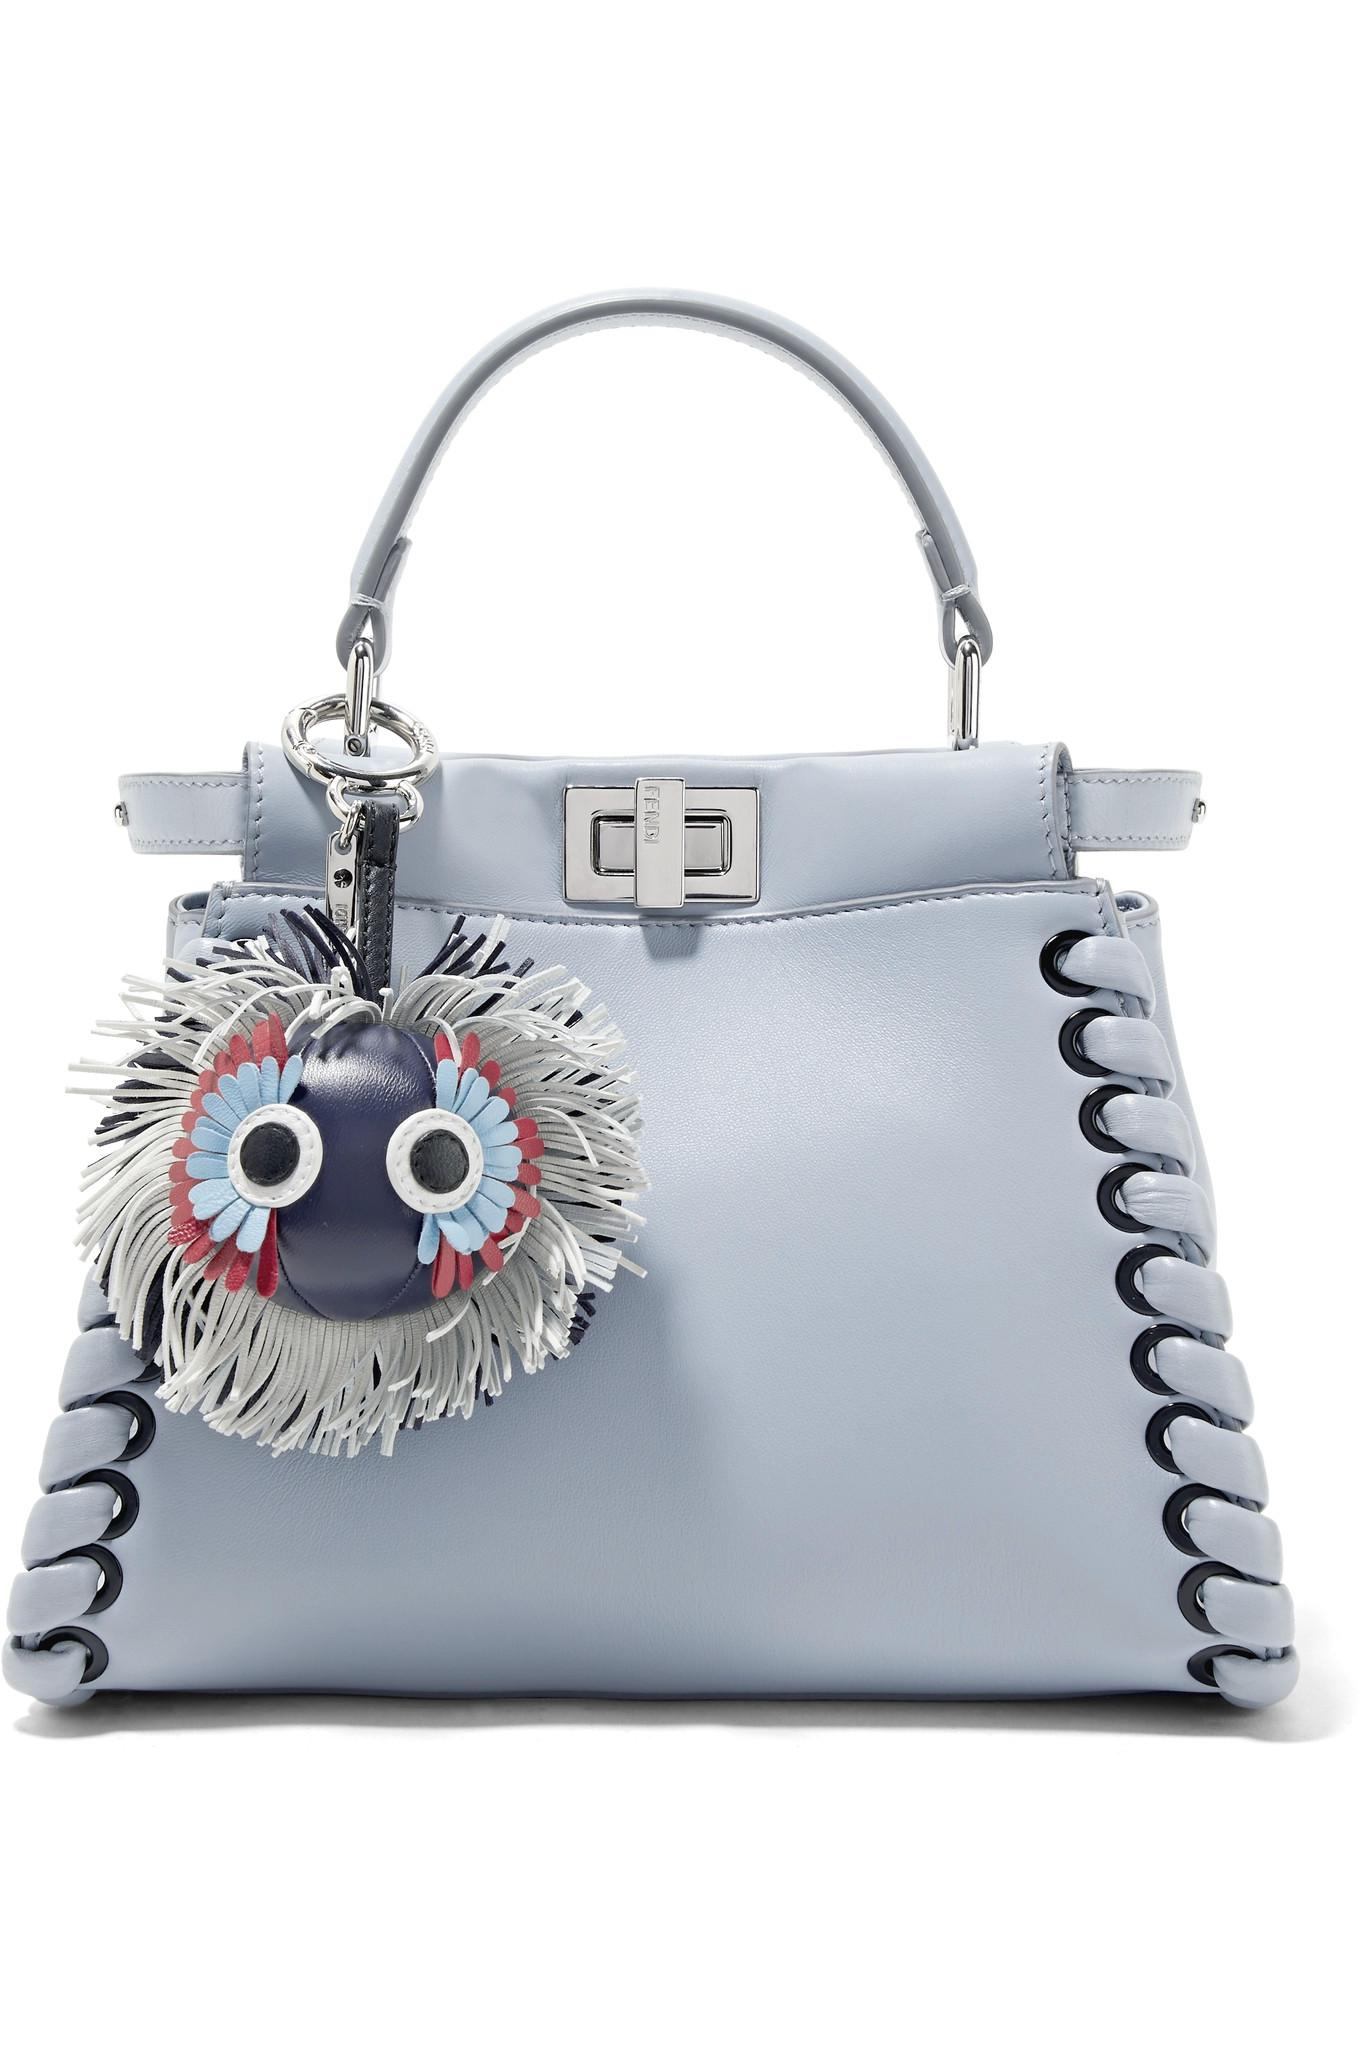 Fendi Leather Bag Charm - Storm blue ud2GJ0